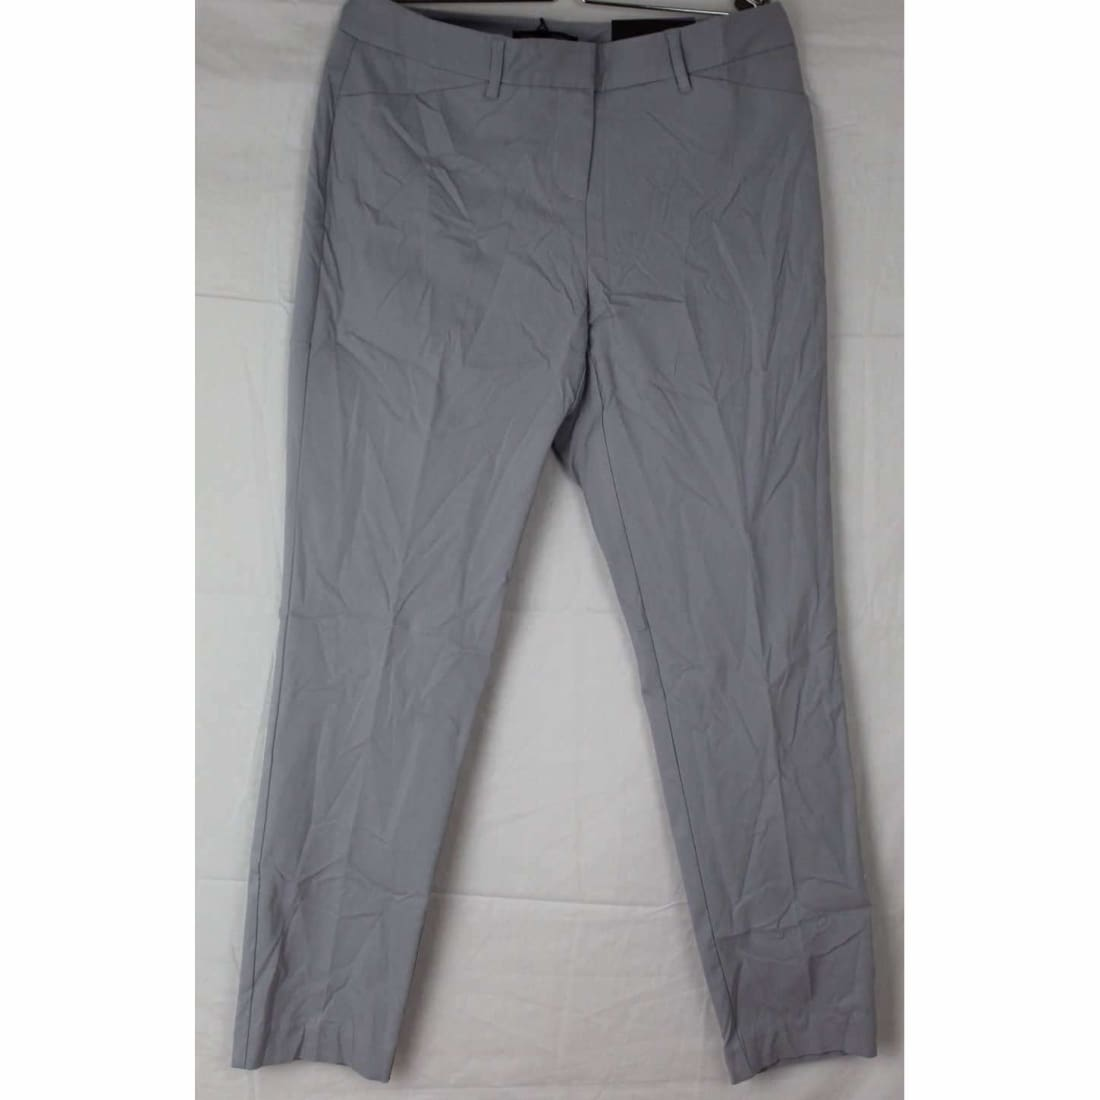 Mario Serrani Womens Comfort Stretch Slim Fit Ankle Length Pant 4X27 / Dove Grey Pants & Shorts